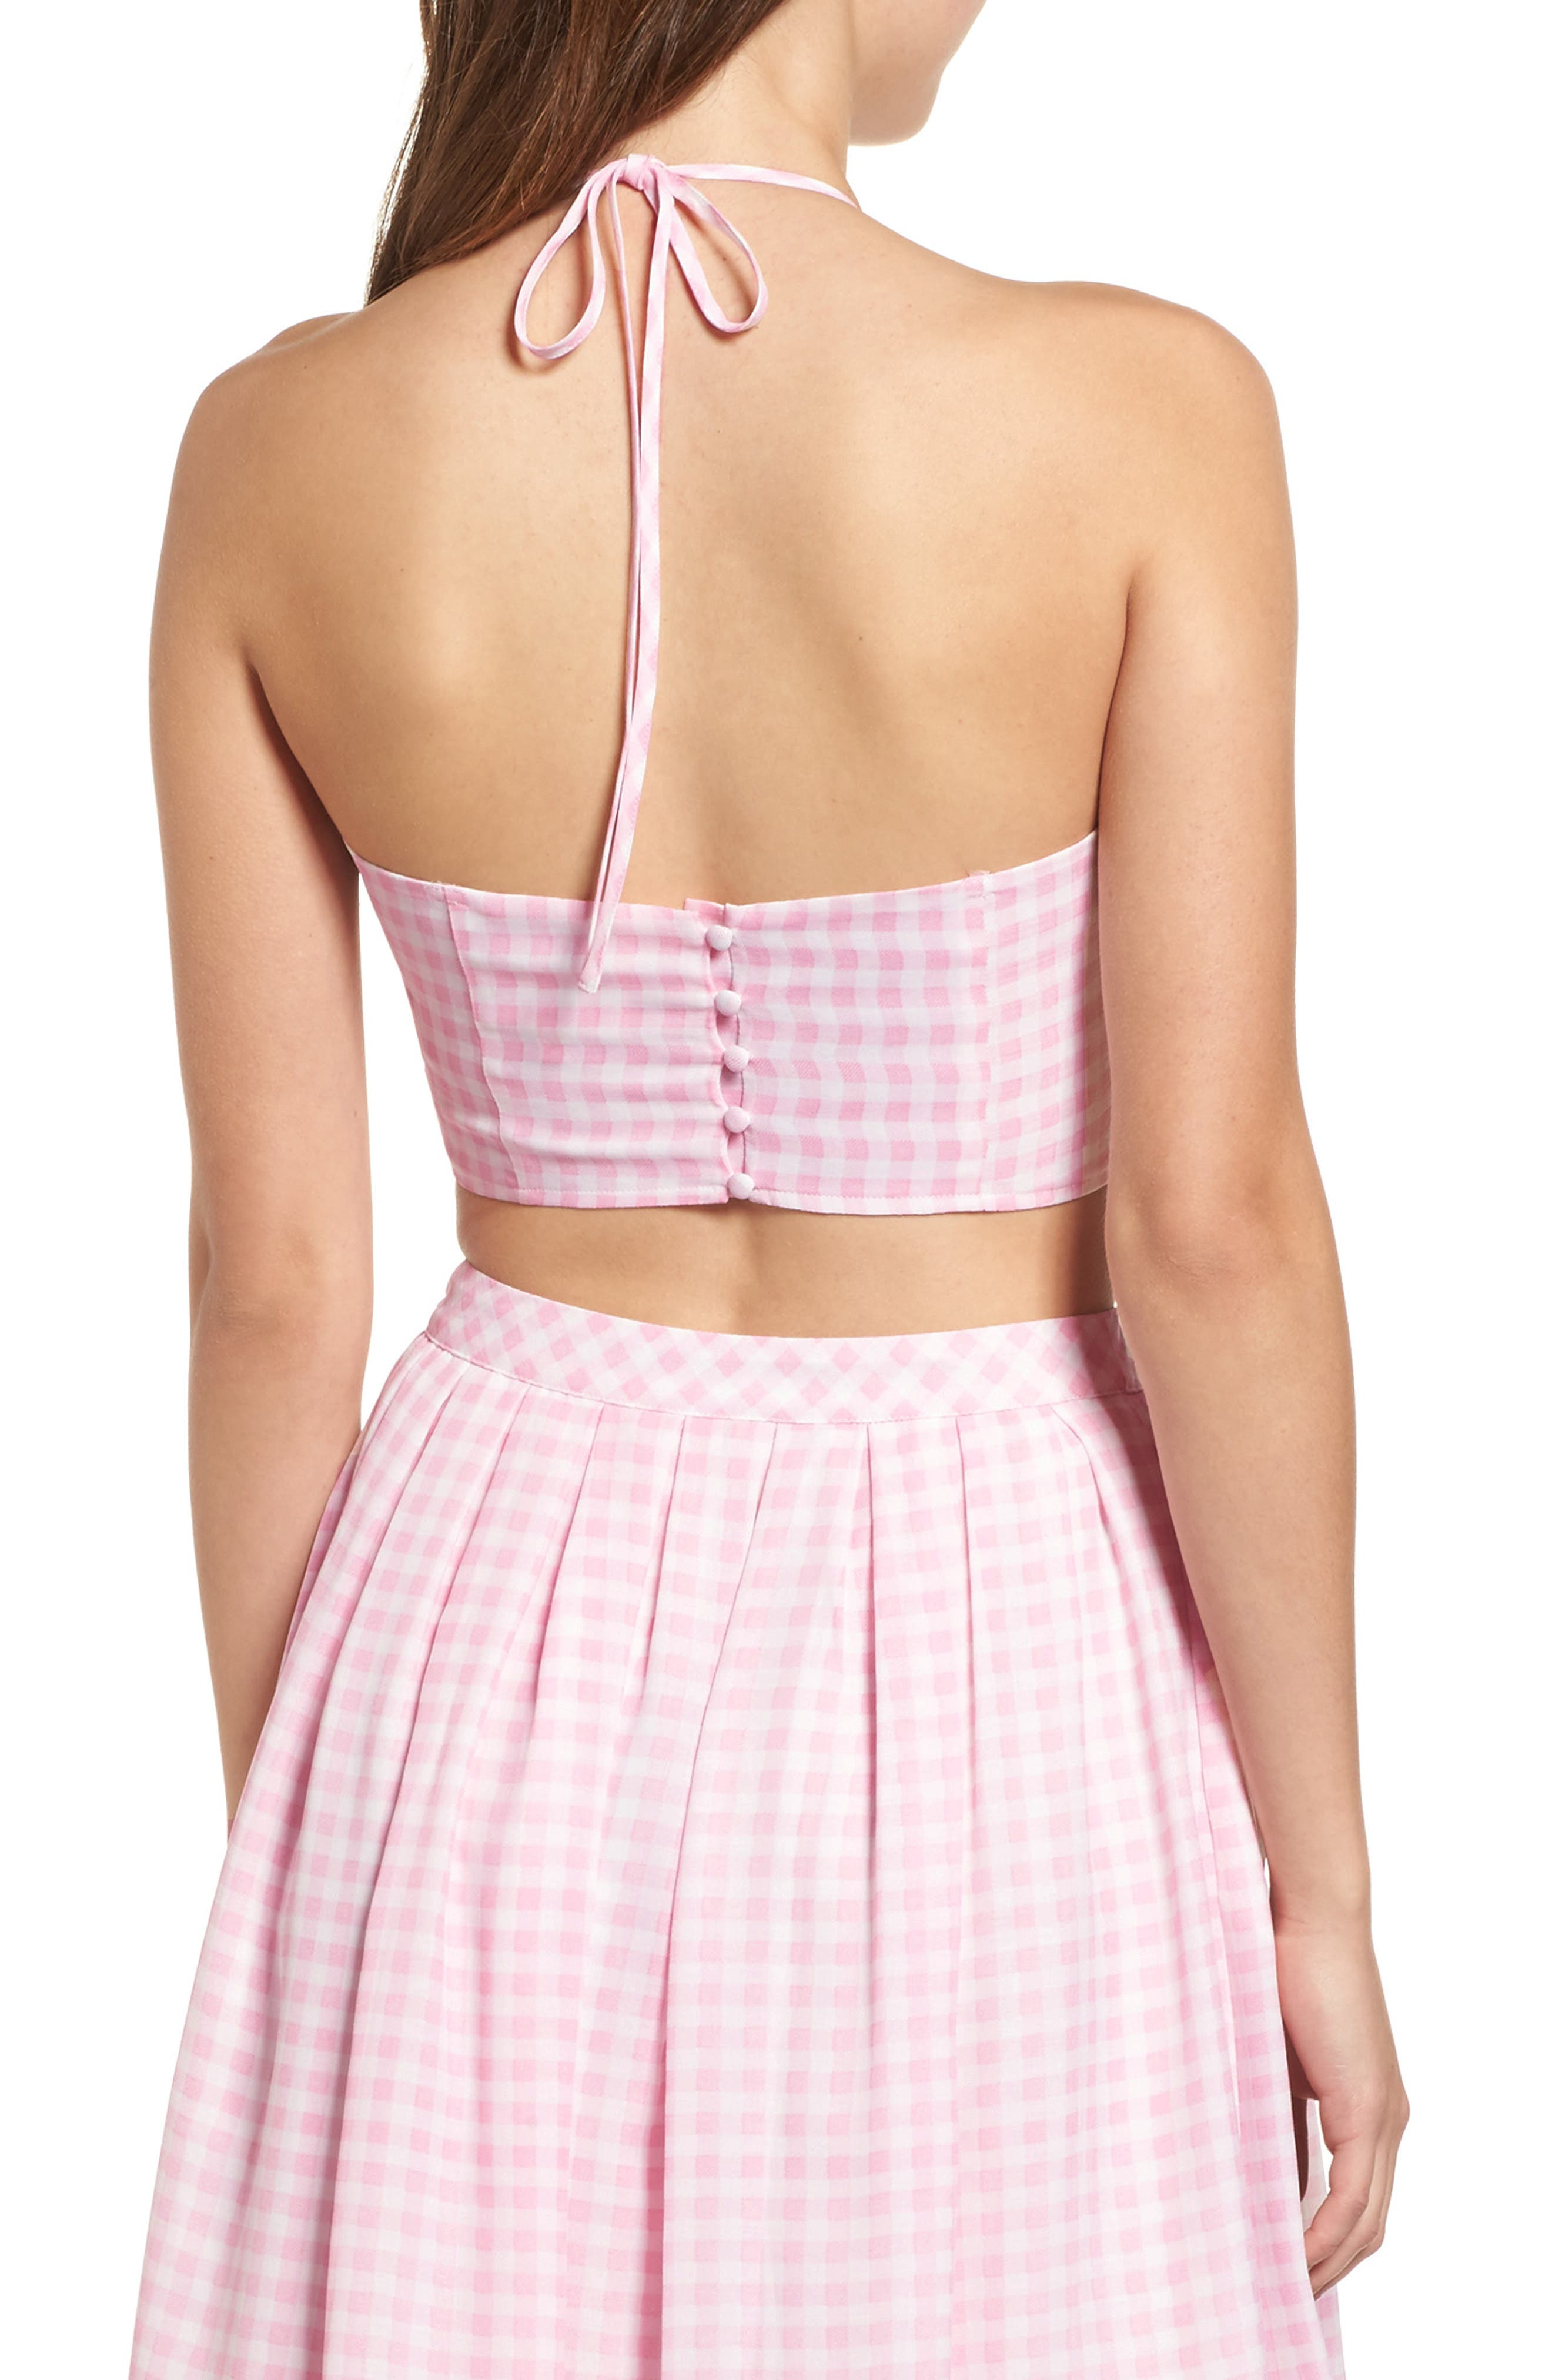 Gingham Halter Crop Top,                             Alternate thumbnail 2, color,                             650